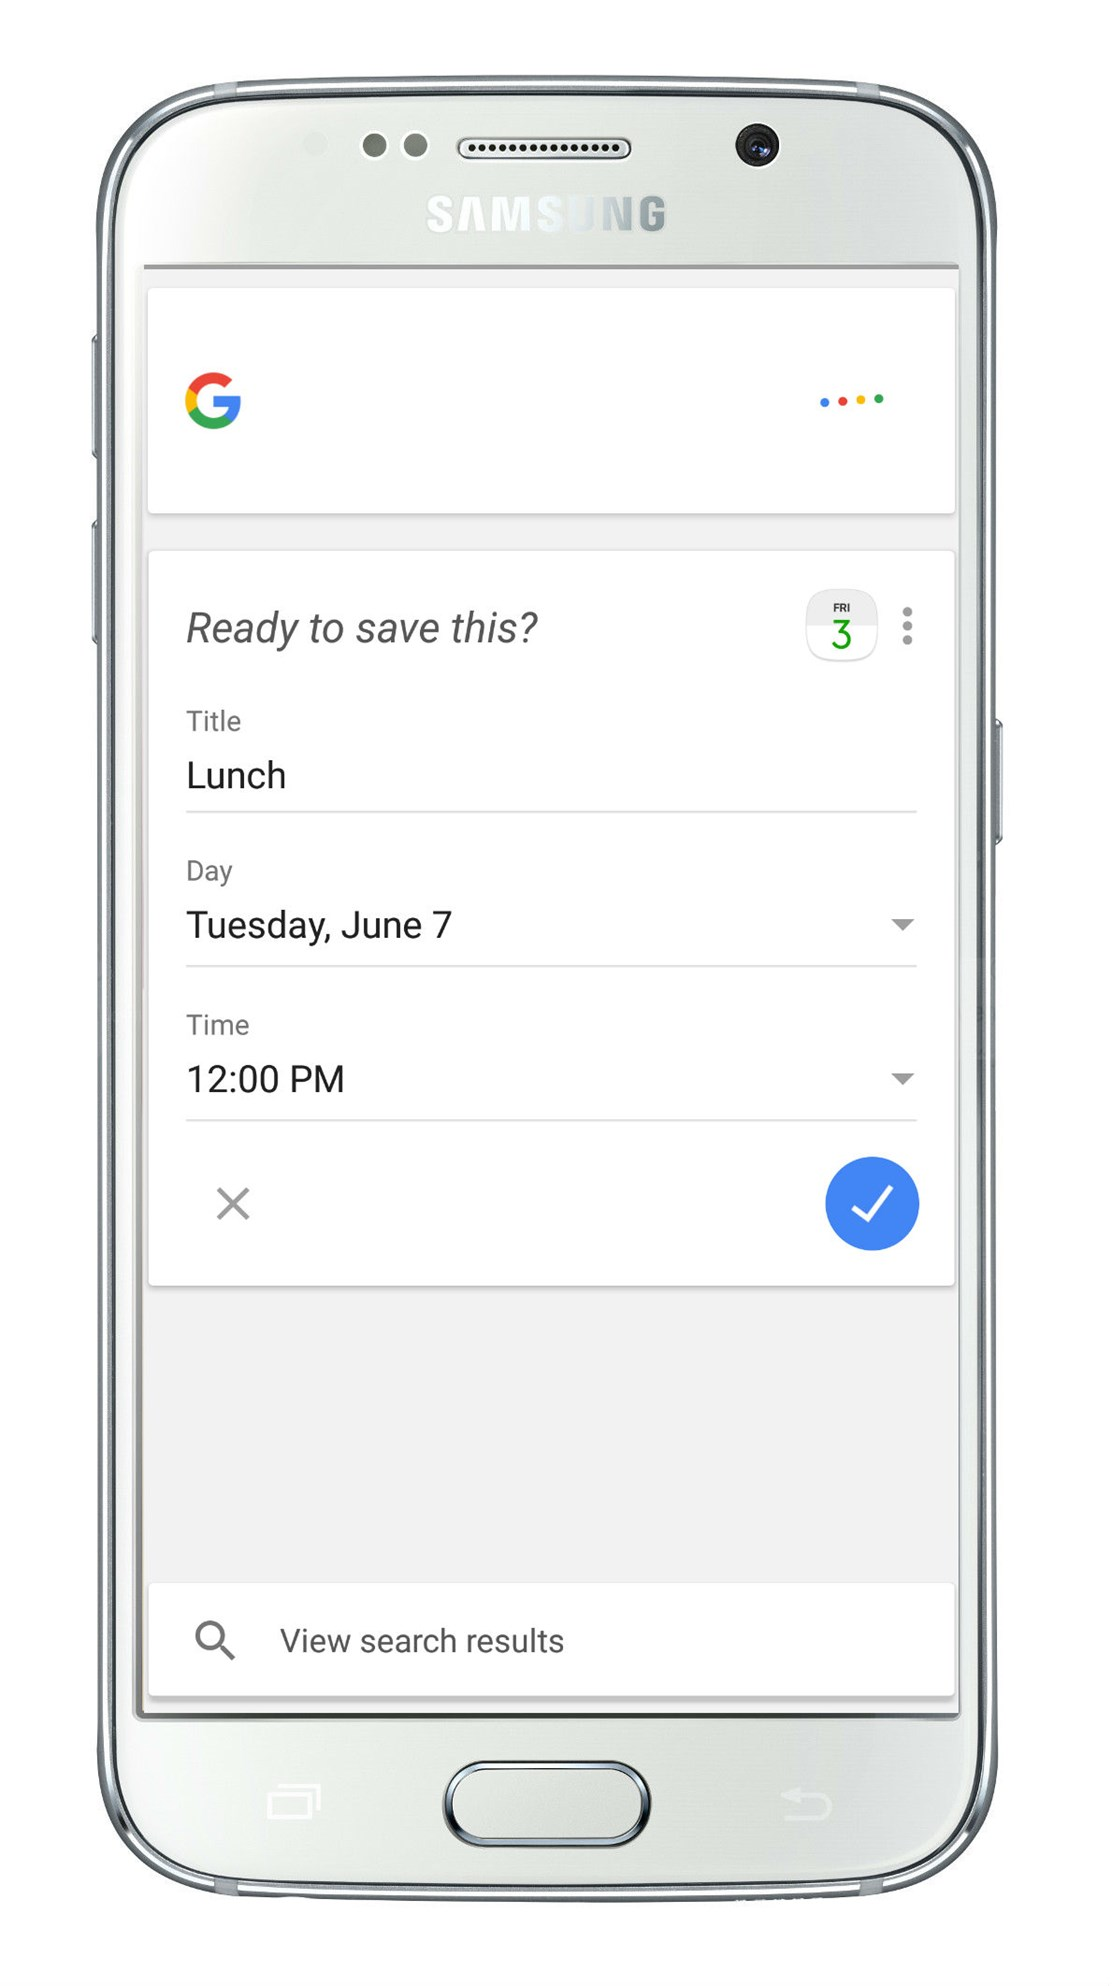 Google Calendar example of natural language processing